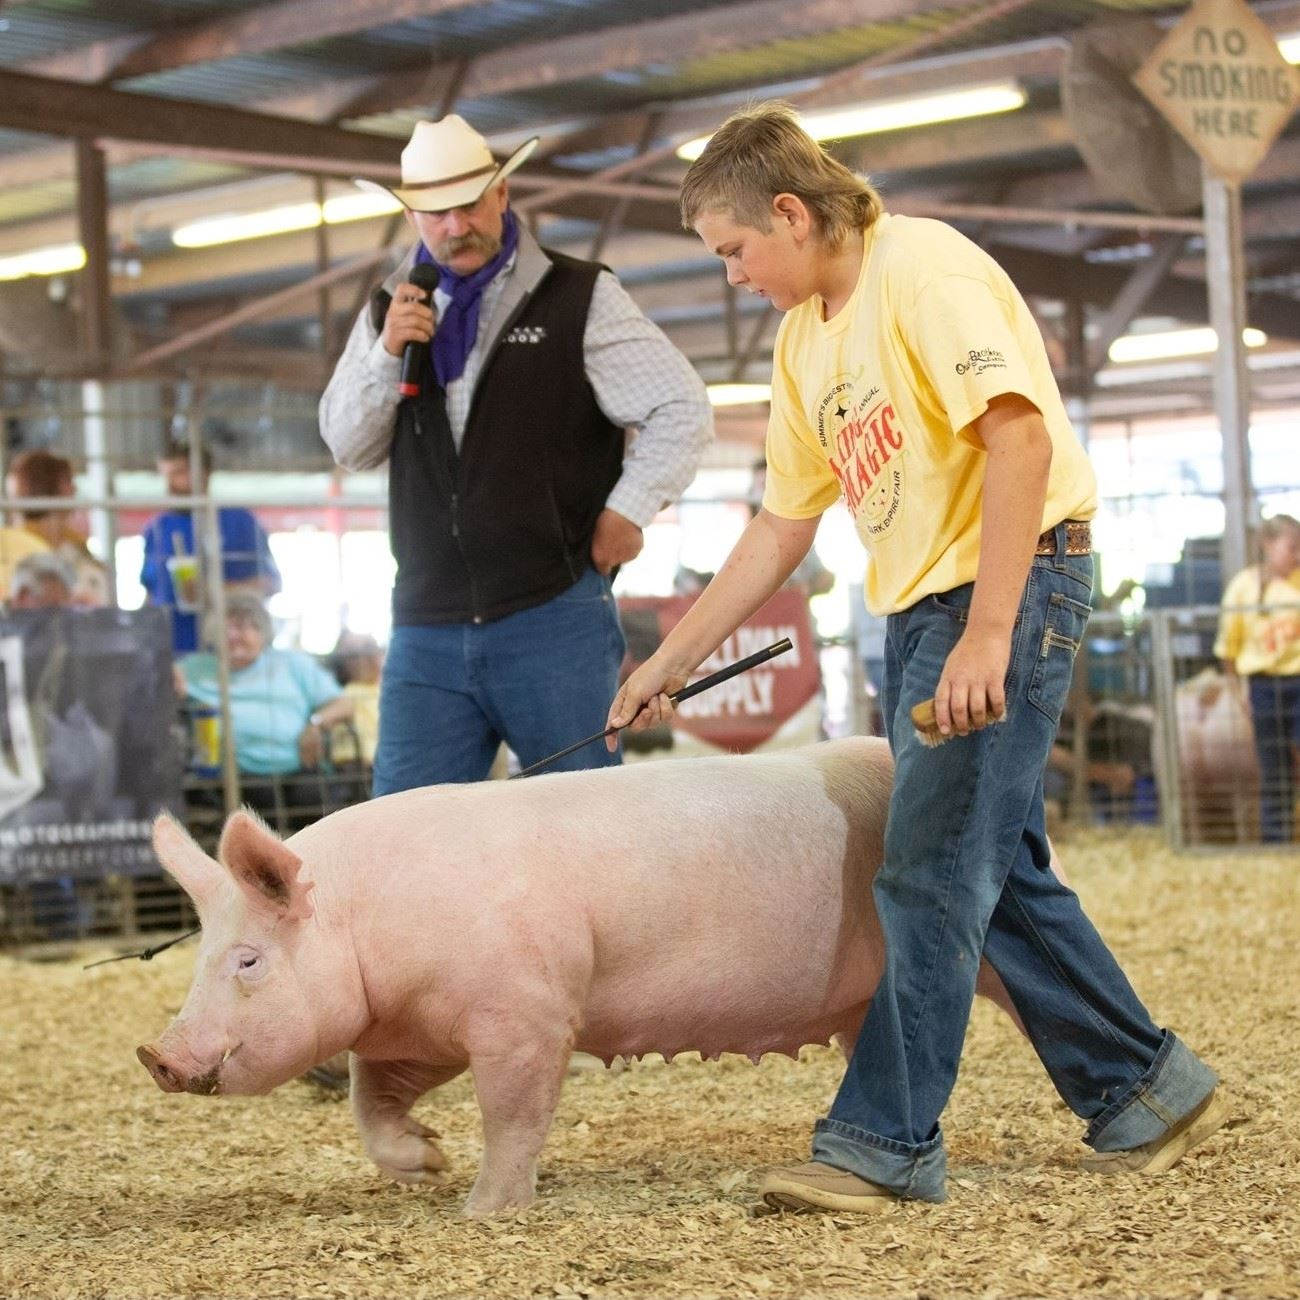 Boy showing a white pig while the judge examines the animal from the background.